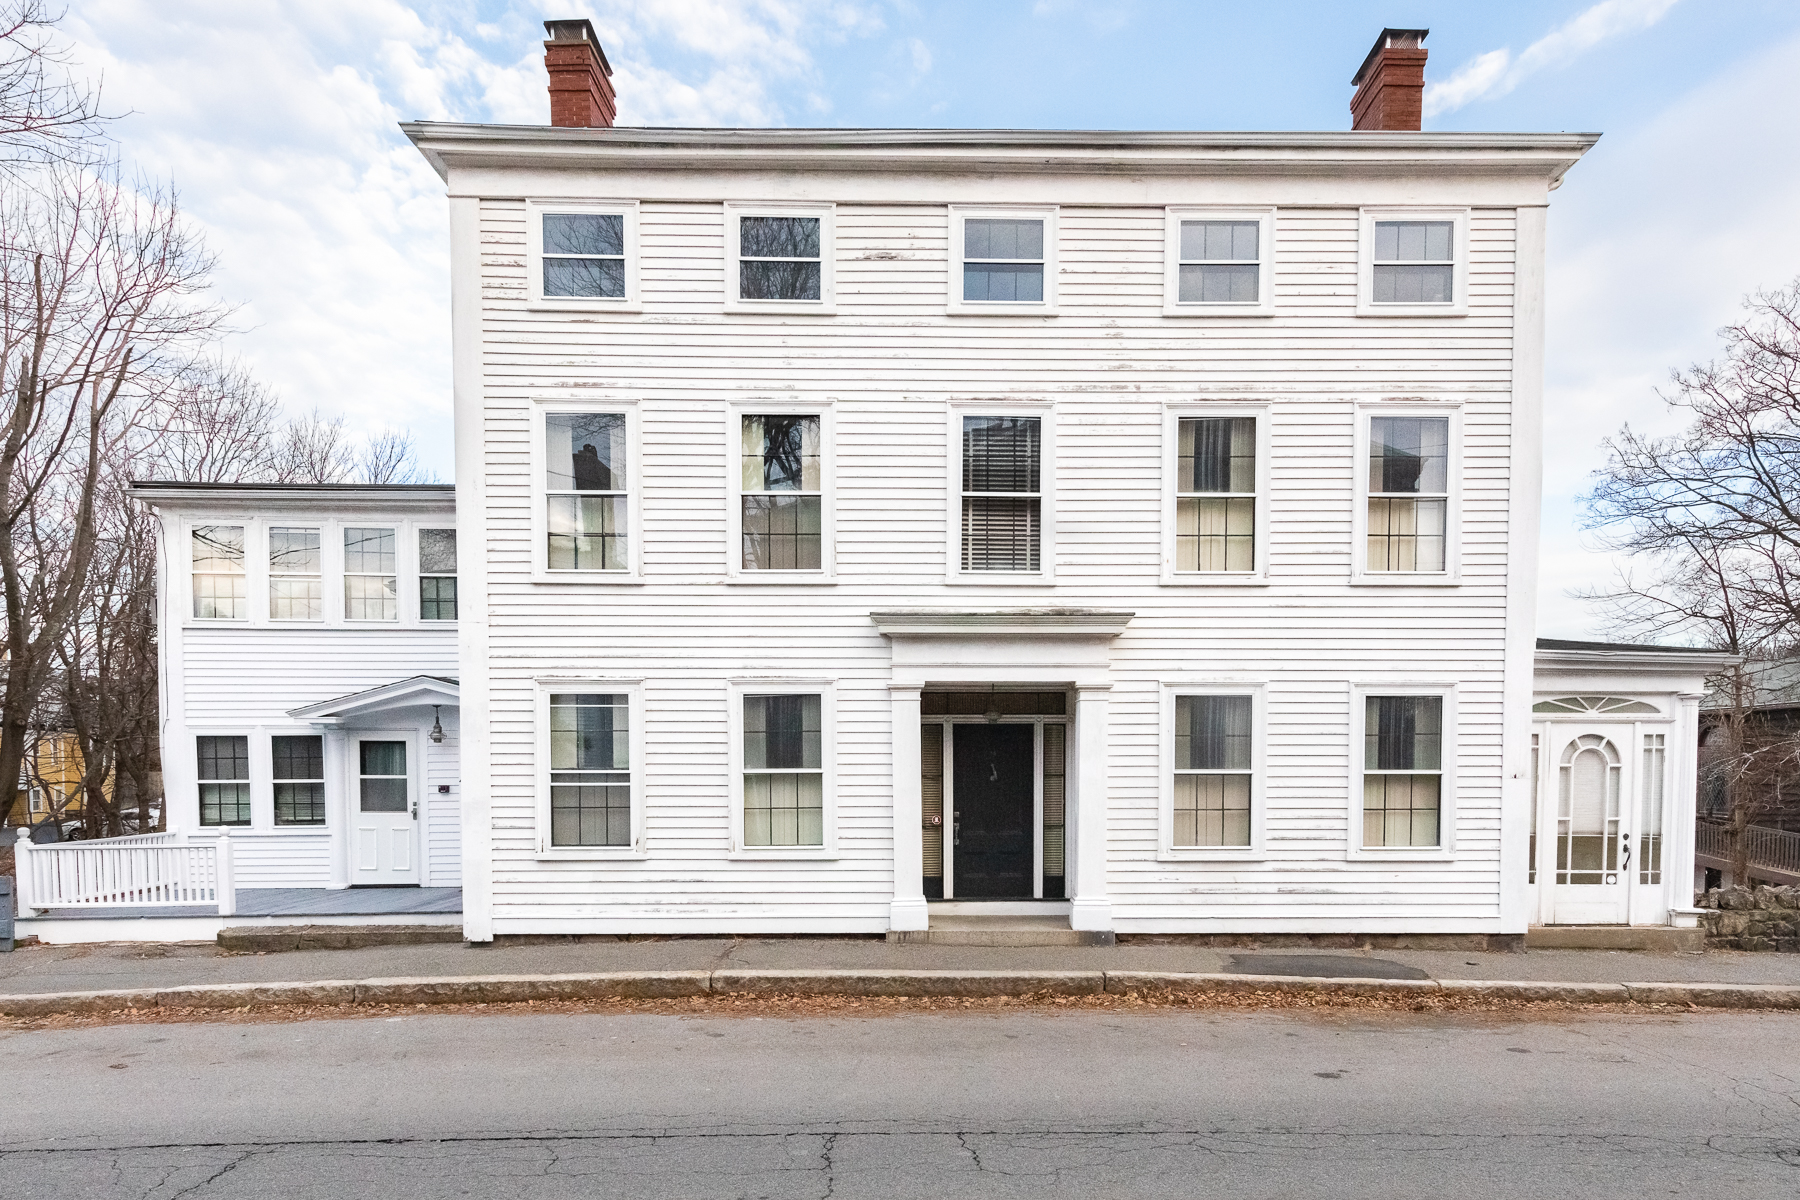 Single Family Homes for Active at Important Piece of Marblehead History 45-49 Pleasant Street Marblehead, Massachusetts 01945 United States